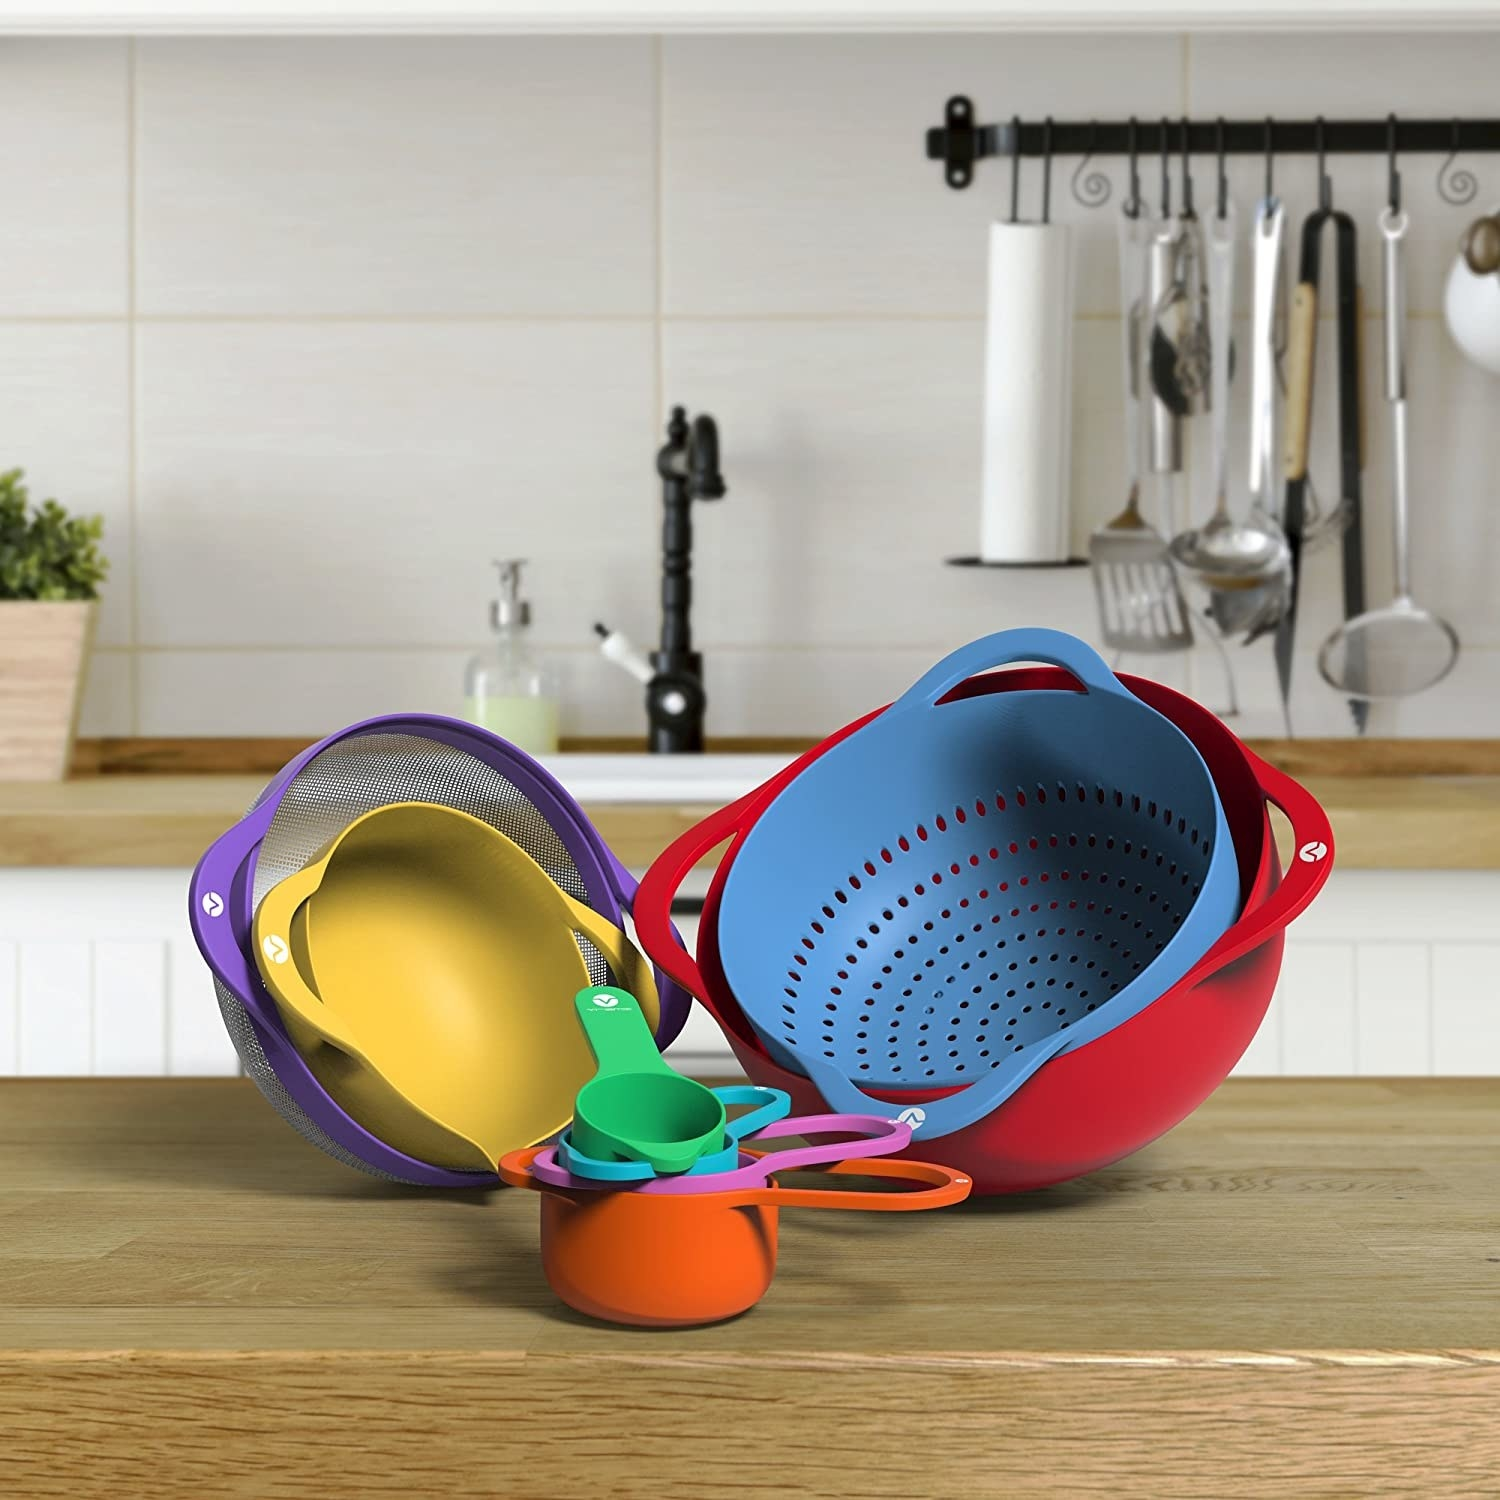 the set of baking tools